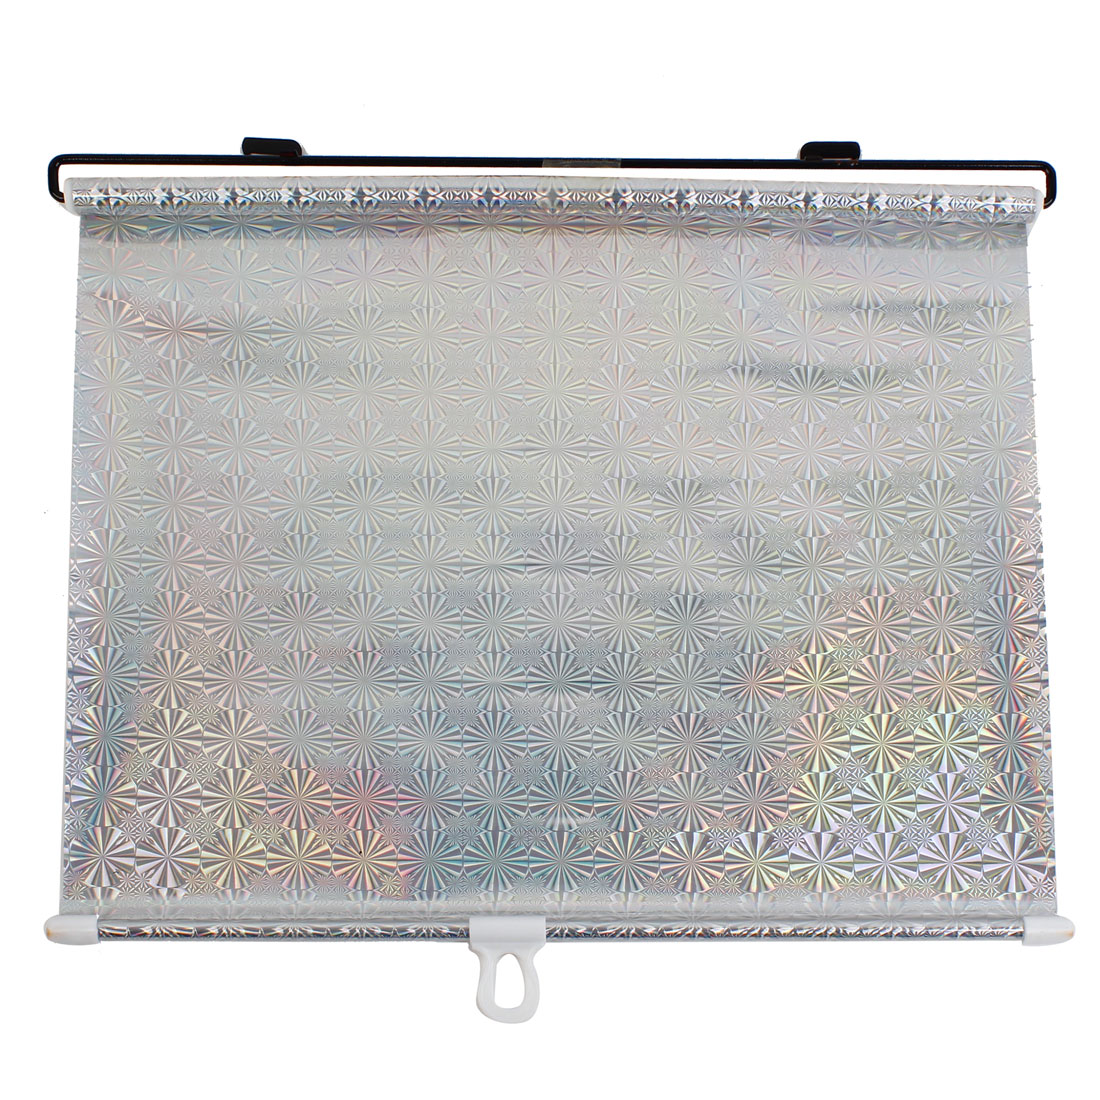 40 x 60cm Silver Tone Vinly Reflective Sunshade Sun Shield for Car